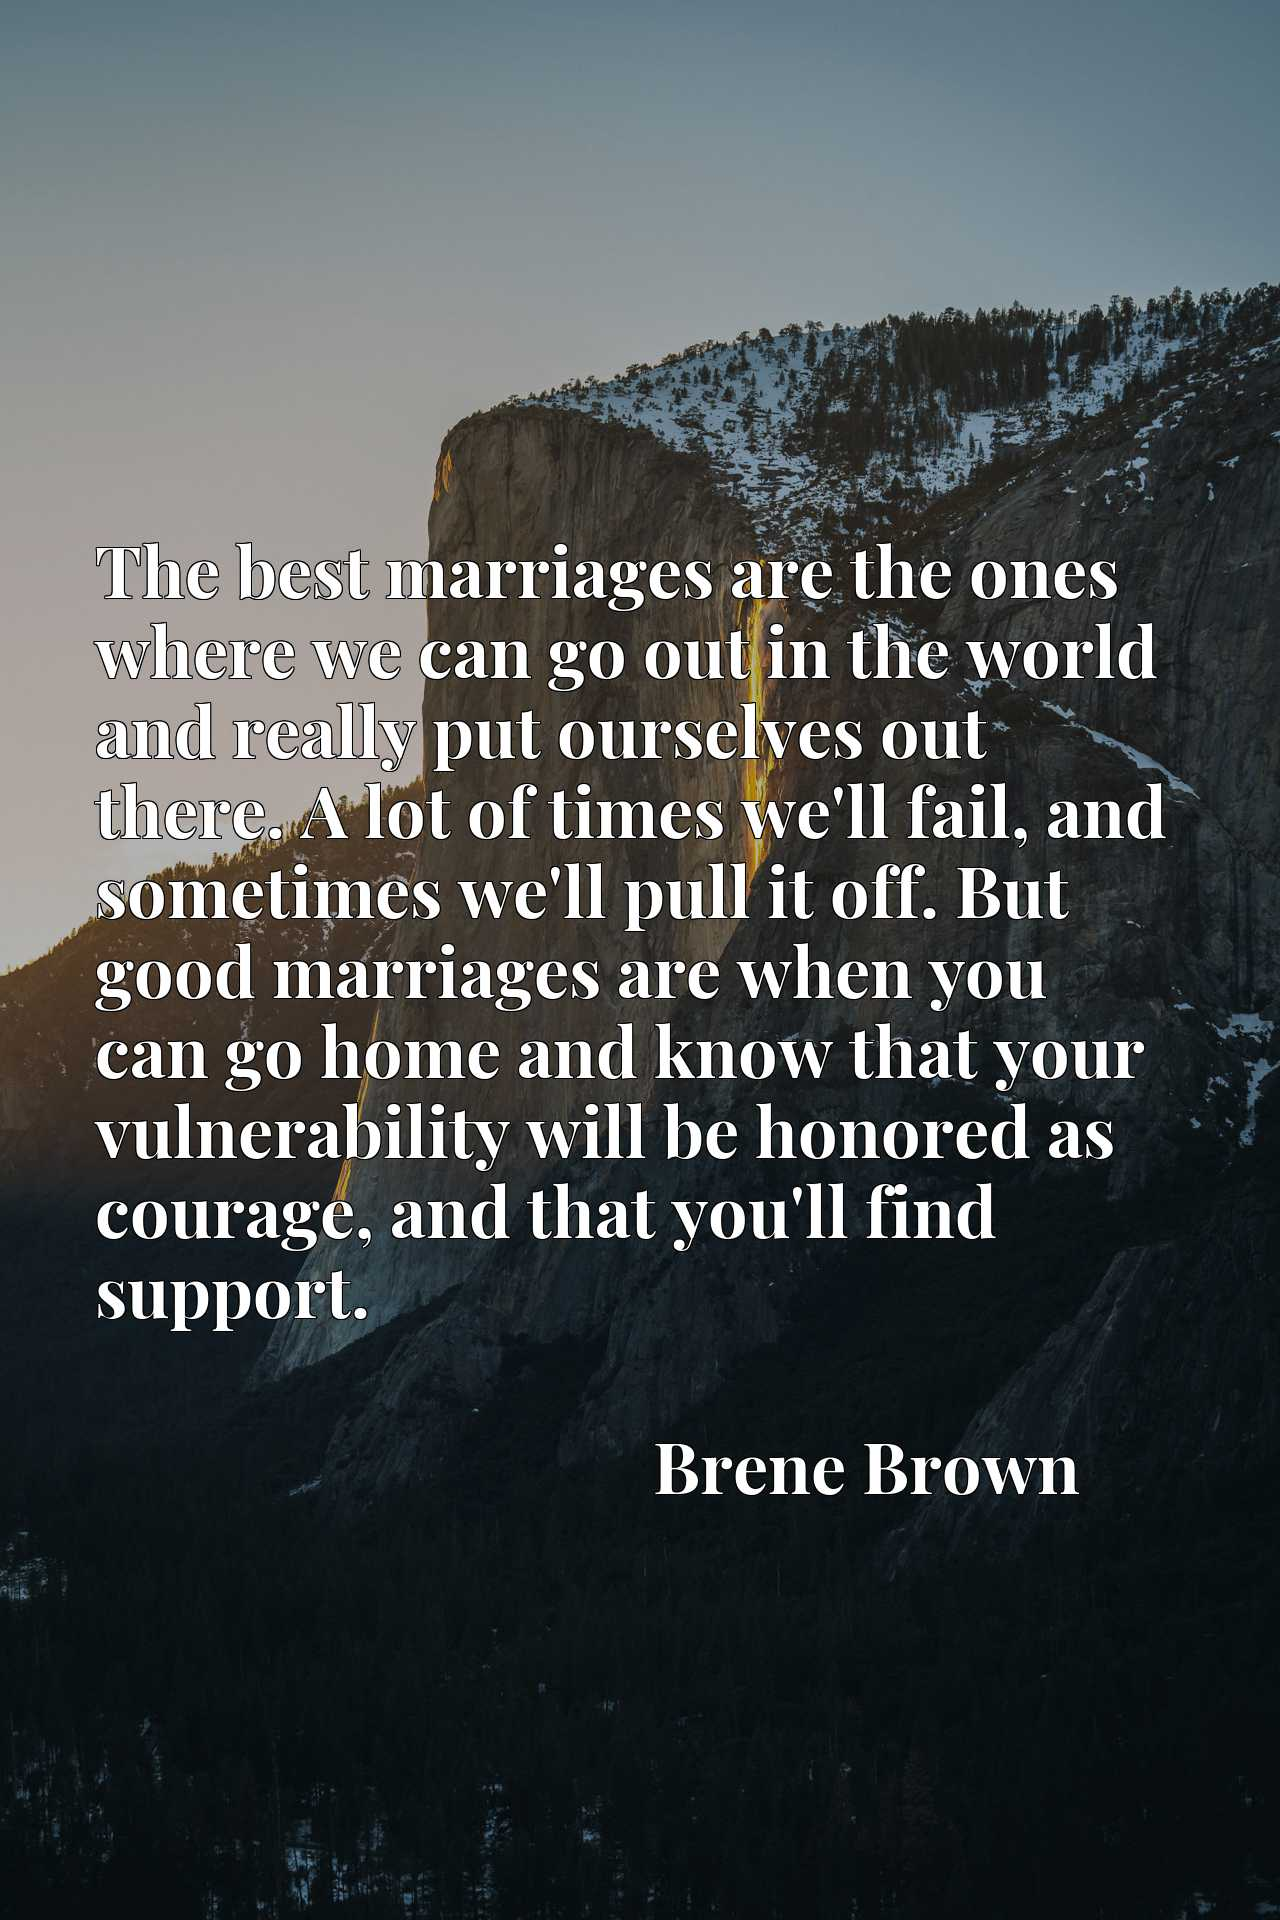 The best marriages are the ones where we can go out in the world and really put ourselves out there. A lot of times we'll fail, and sometimes we'll pull it off. But good marriages are when you can go home and know that your vulnerability will be honored as courage, and that you'll find support.